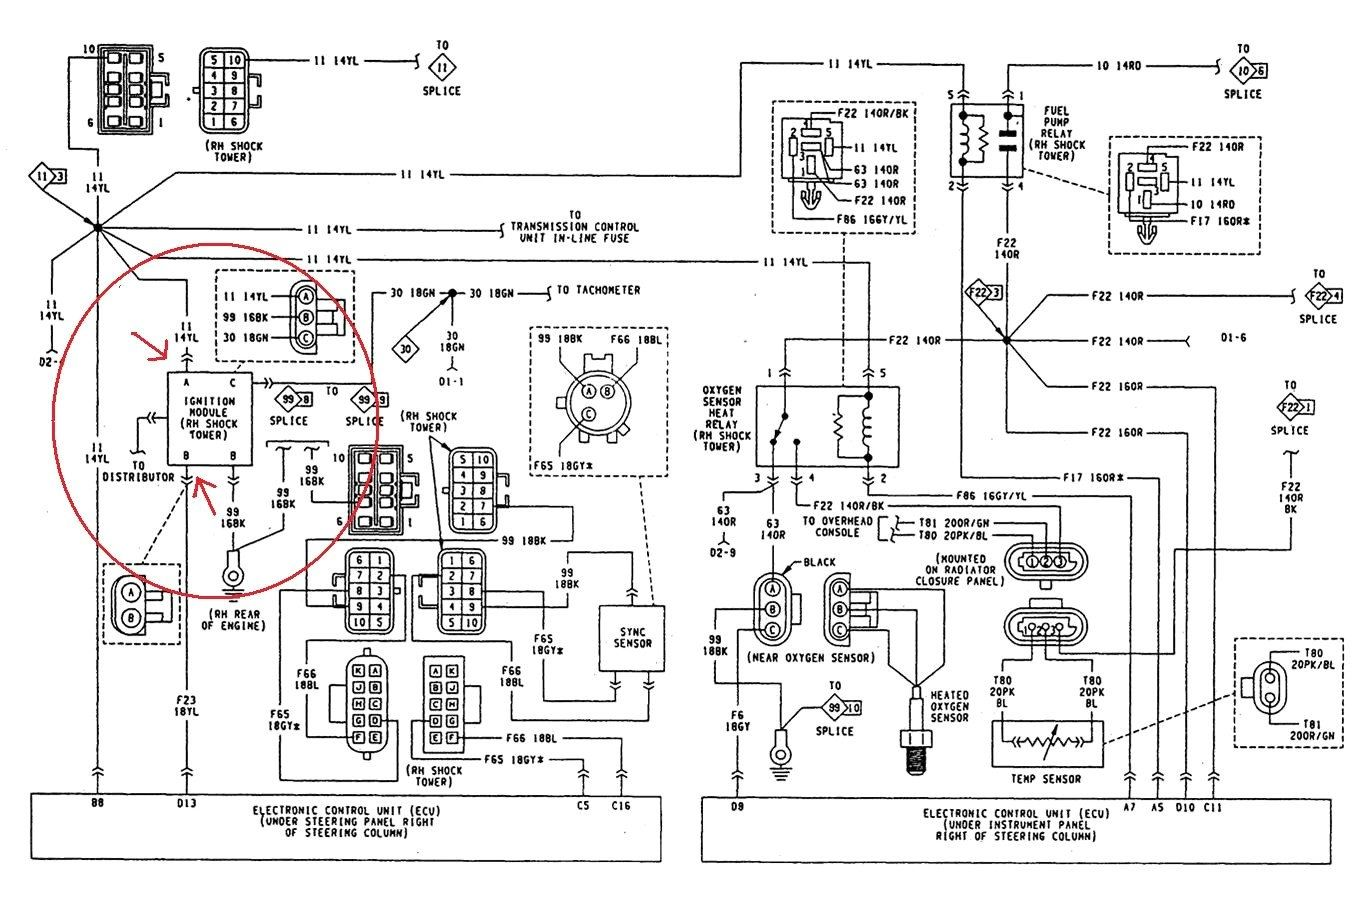 small resolution of 1990 jeep yj vacuum diagram wiring diagram name 1990 jeep cherokee vacuum diagram 1990 jeep vacuum diagram